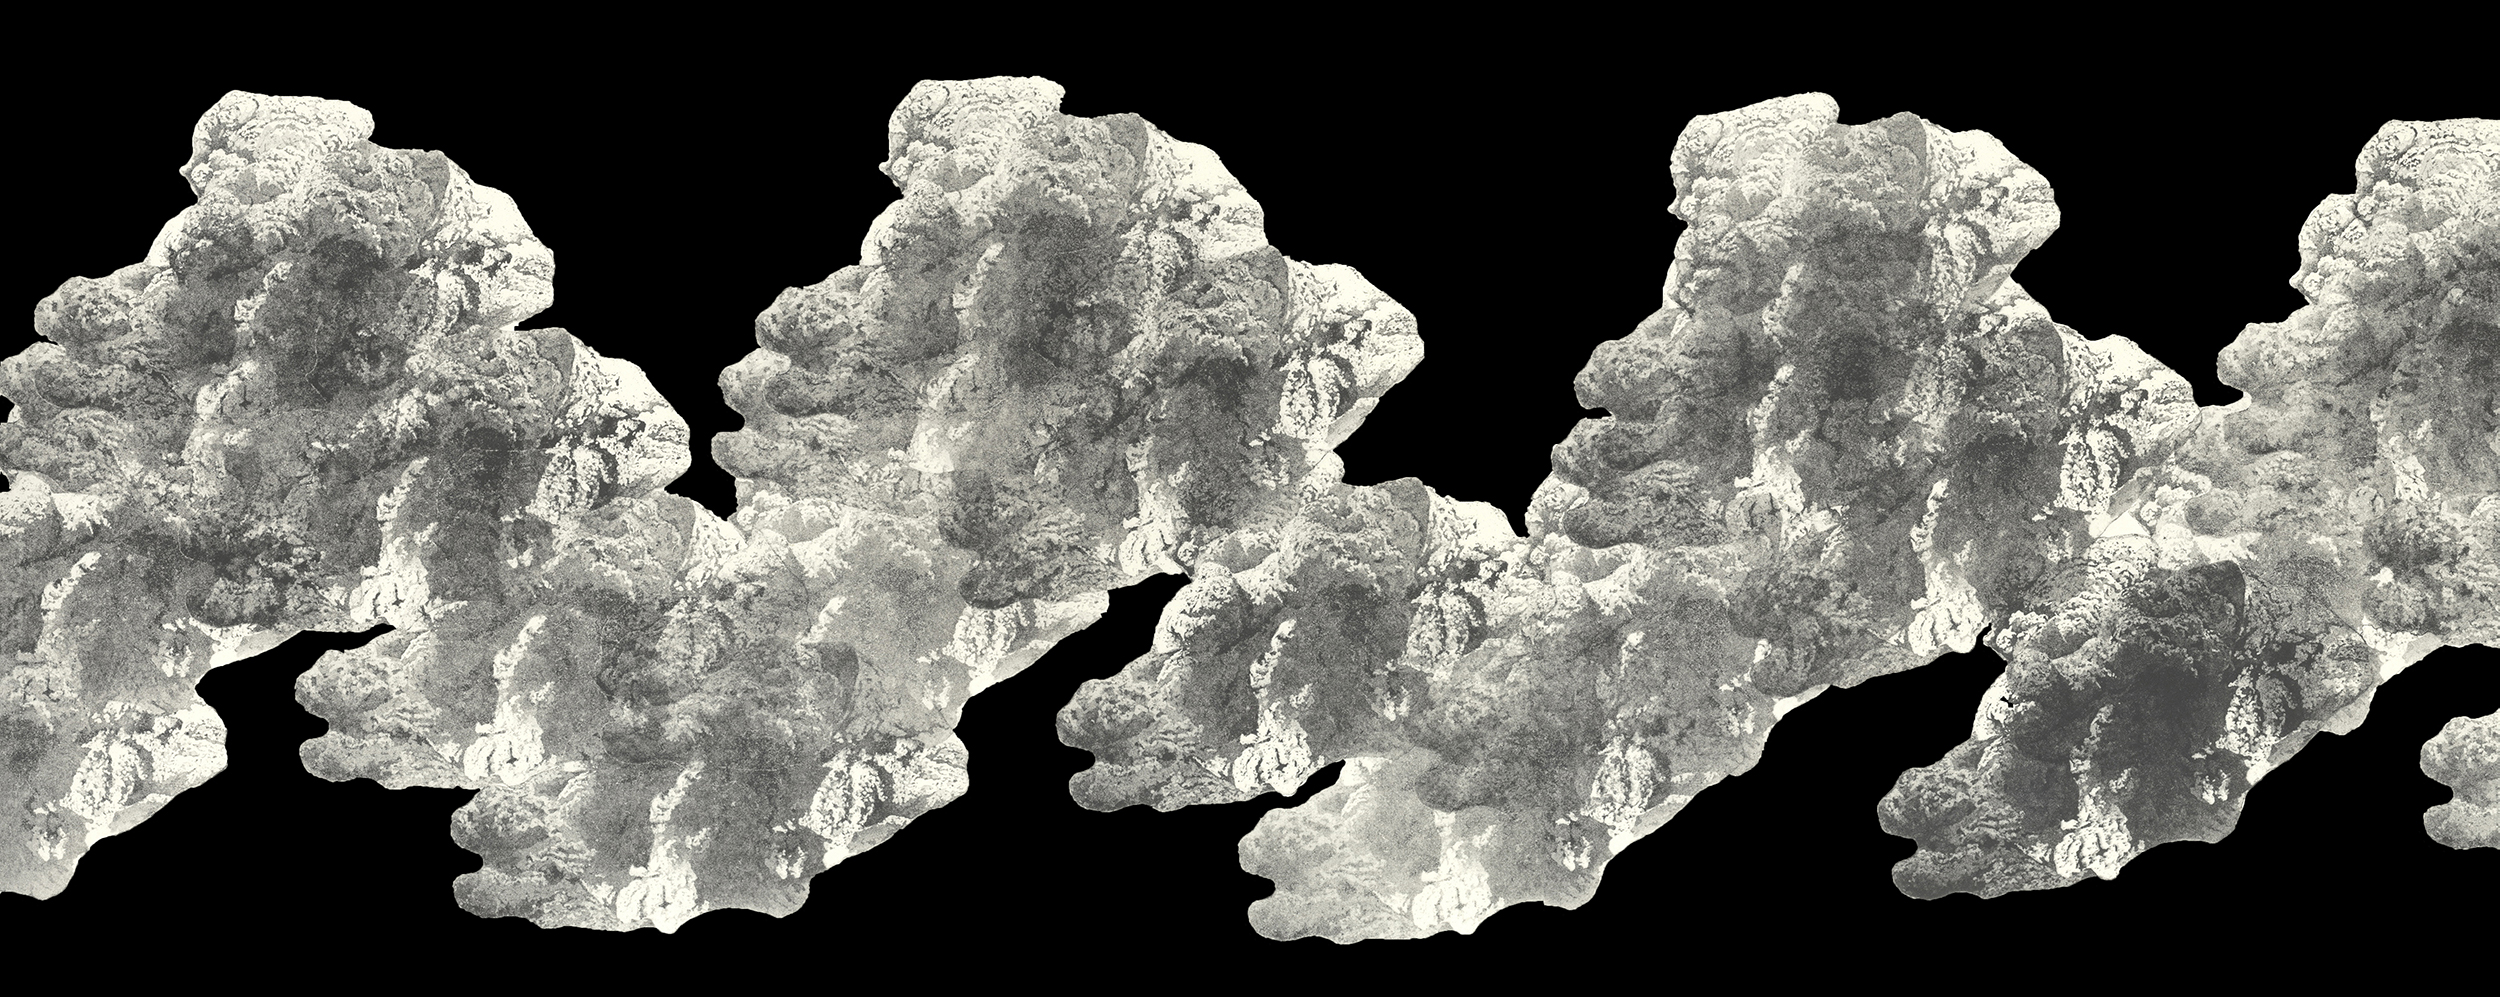 Black and white image of rocks or clouds in chain.